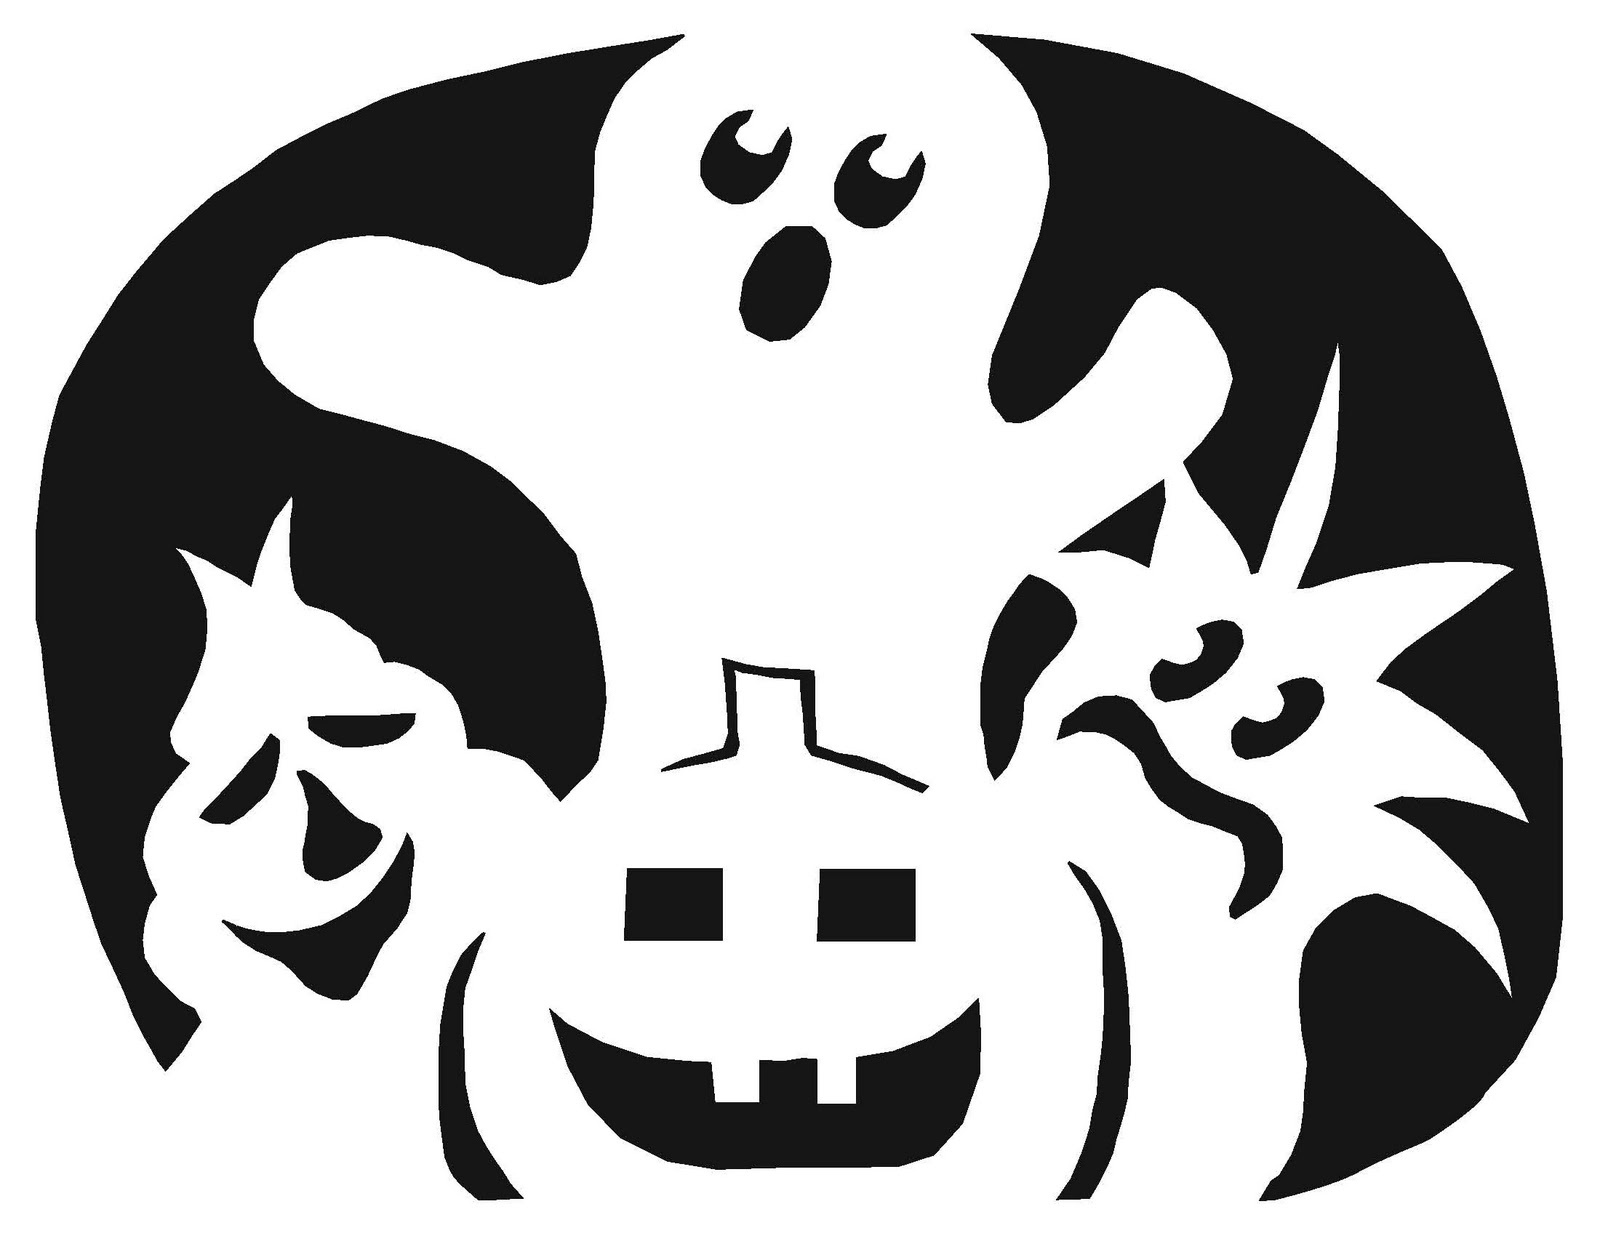 image relating to Pumpkin Stencils Free Printable referred to as Cost-free Printable Pumpkin Stencils Free of charge Printable